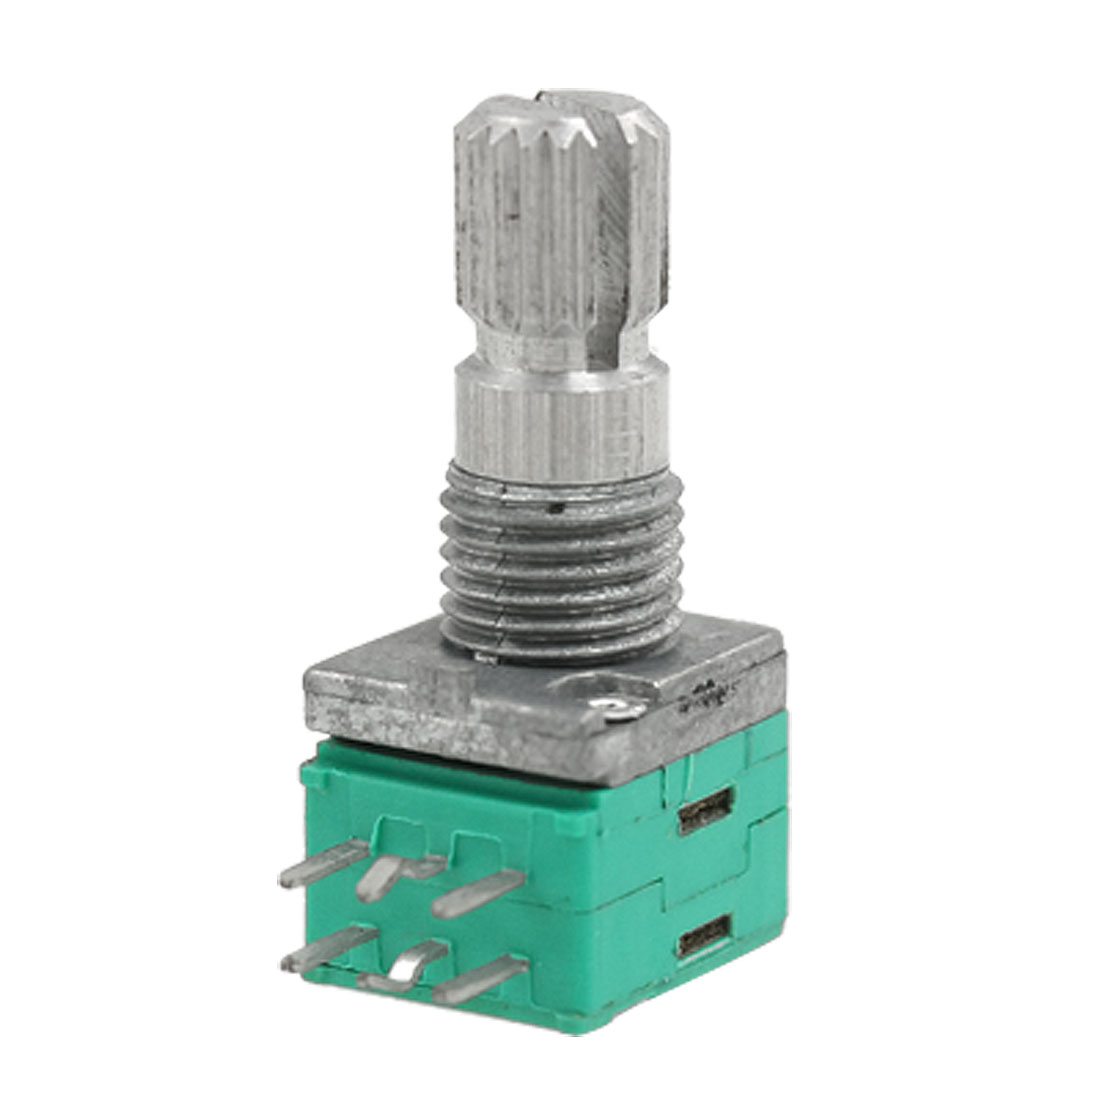 6mm Split Shaft 10K ohm 80mW Carbon Single Turn Axial Potentiometer